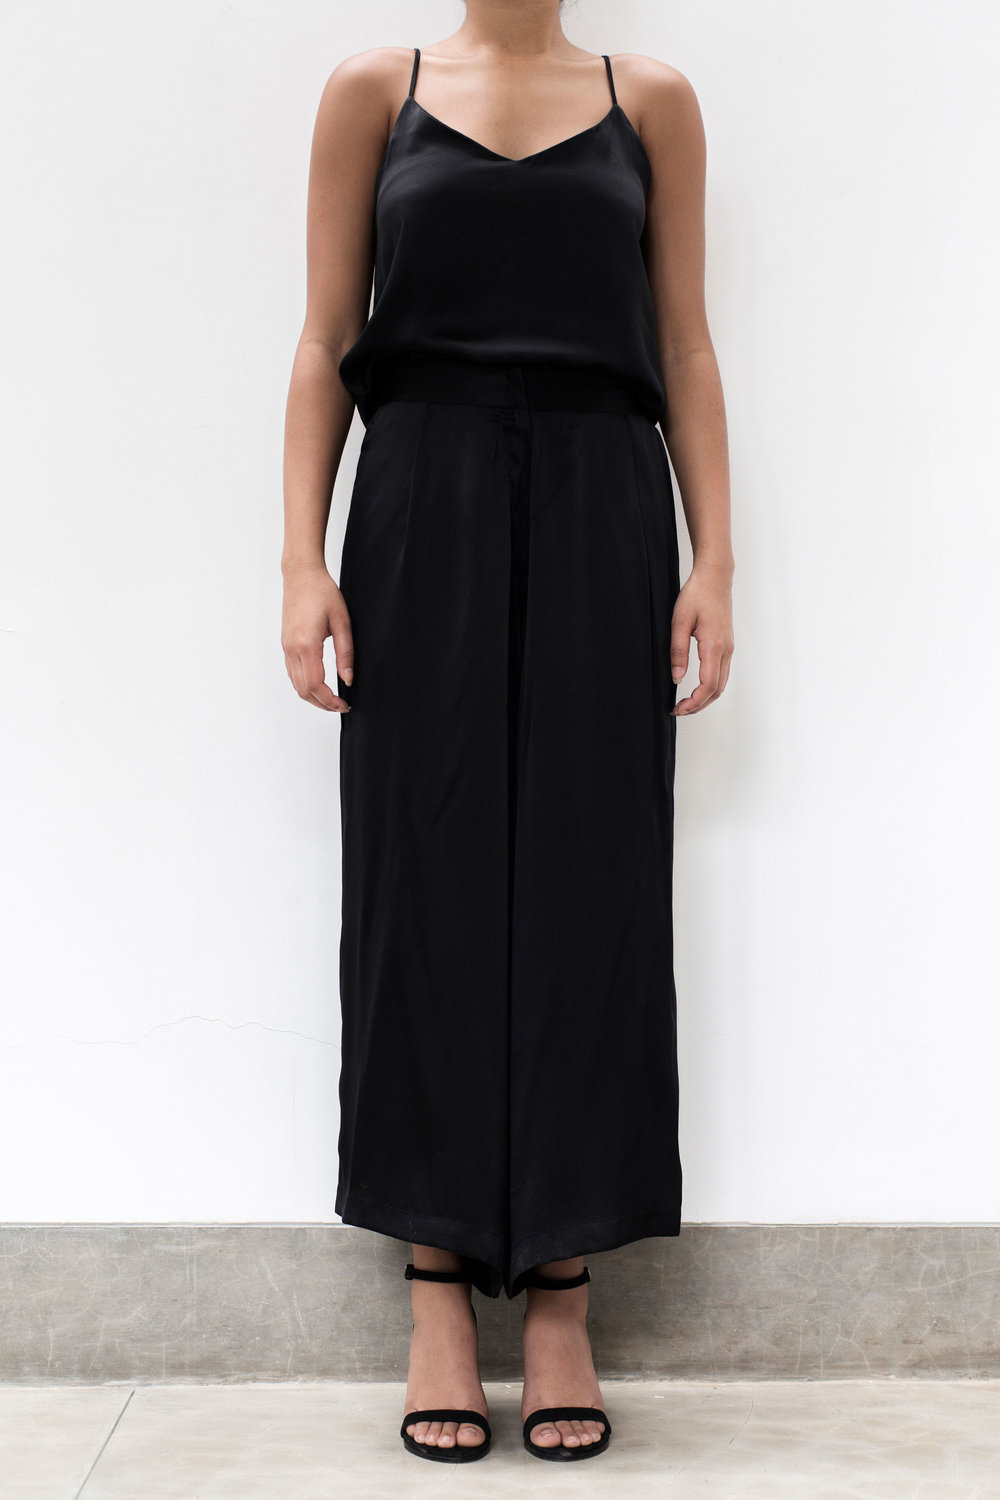 TAREENI-WIDE-LEG-PANTS---BLACK.jpg